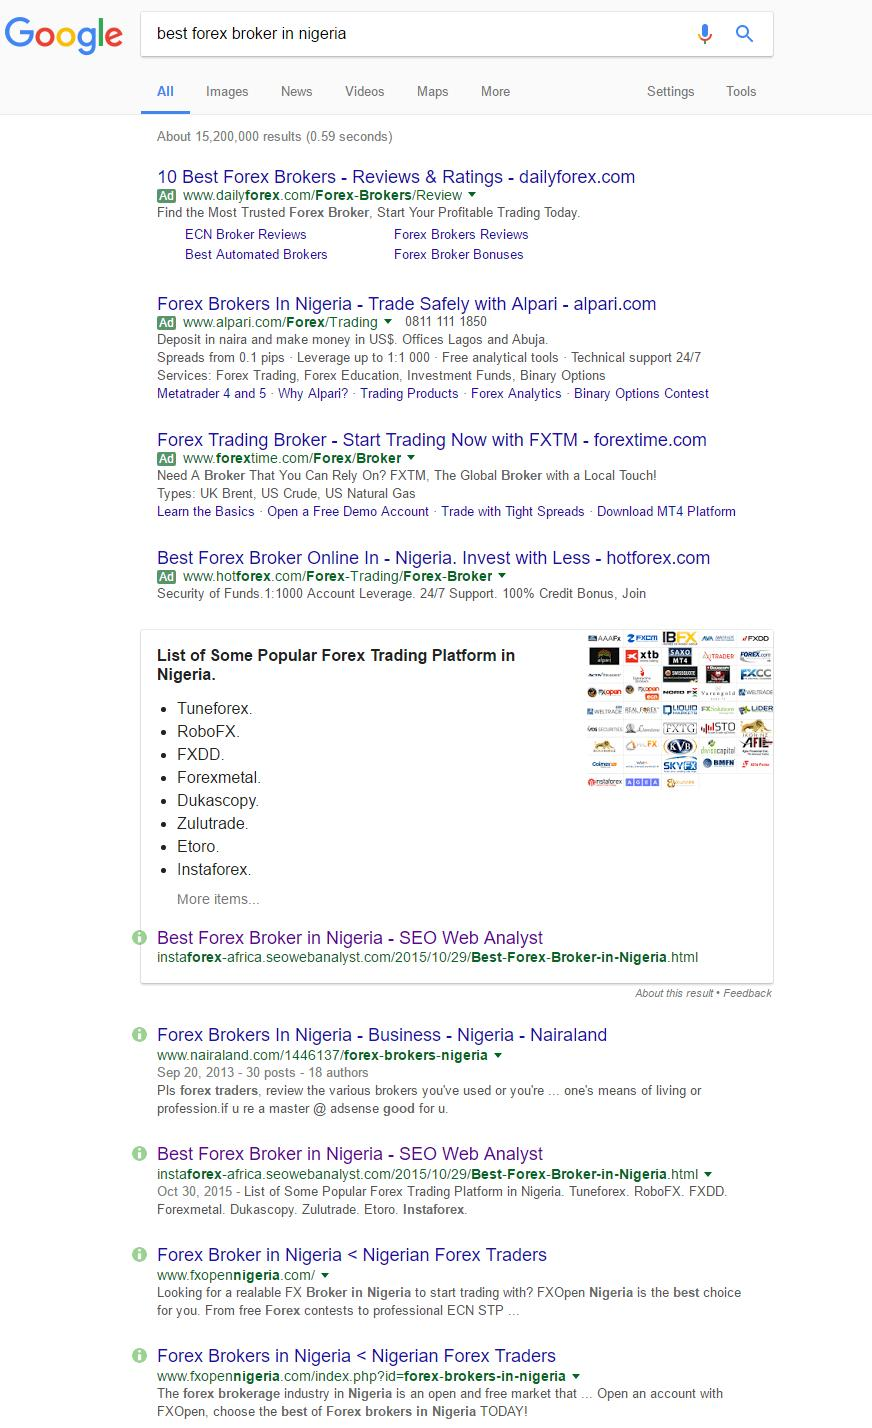 google-search-snippets